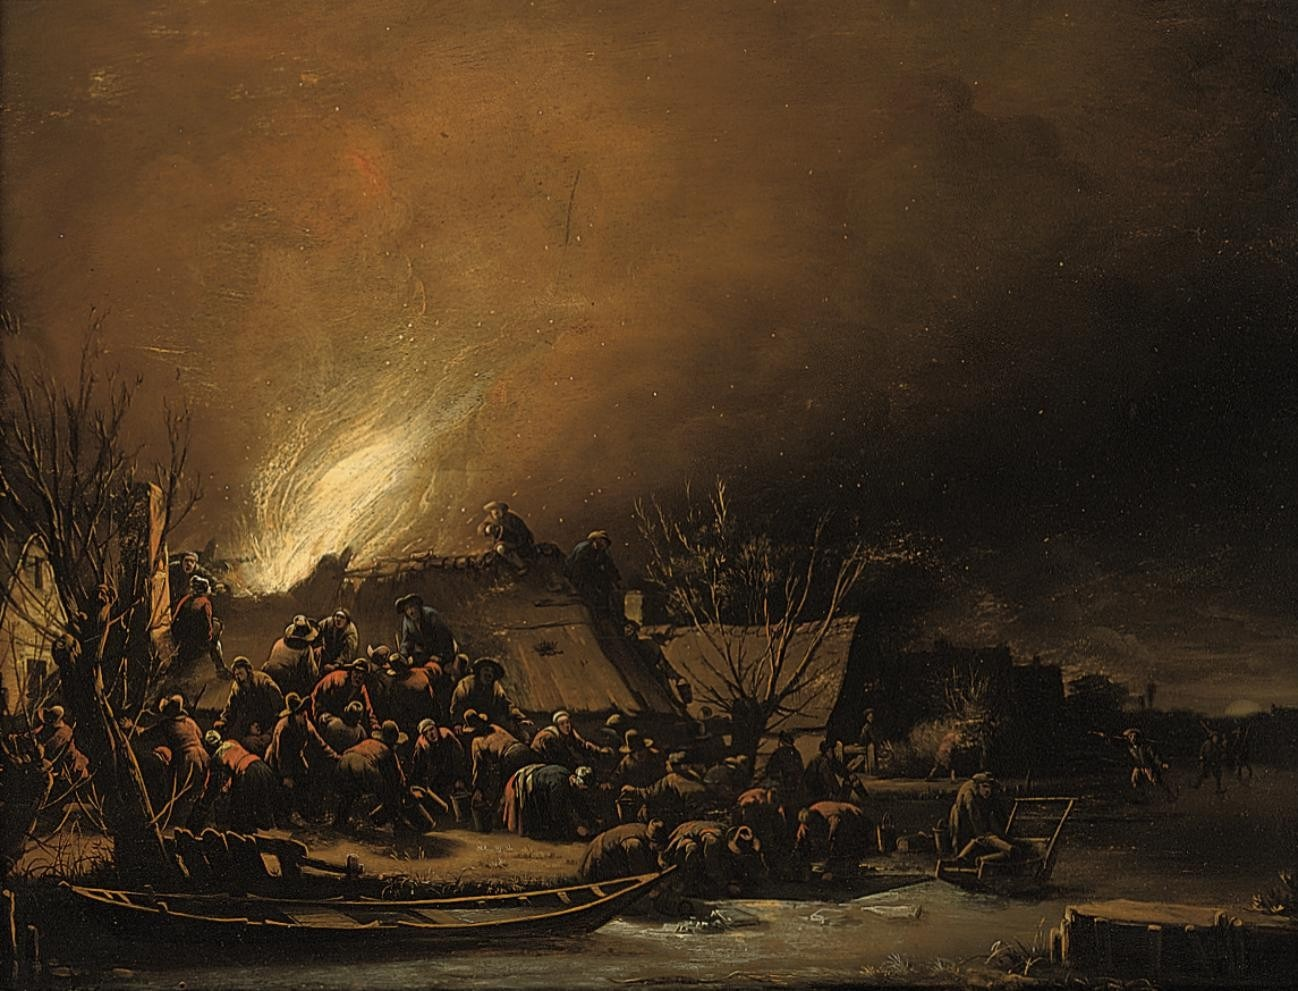 File:Egbert van der Poel - A fire in a village at night (1659